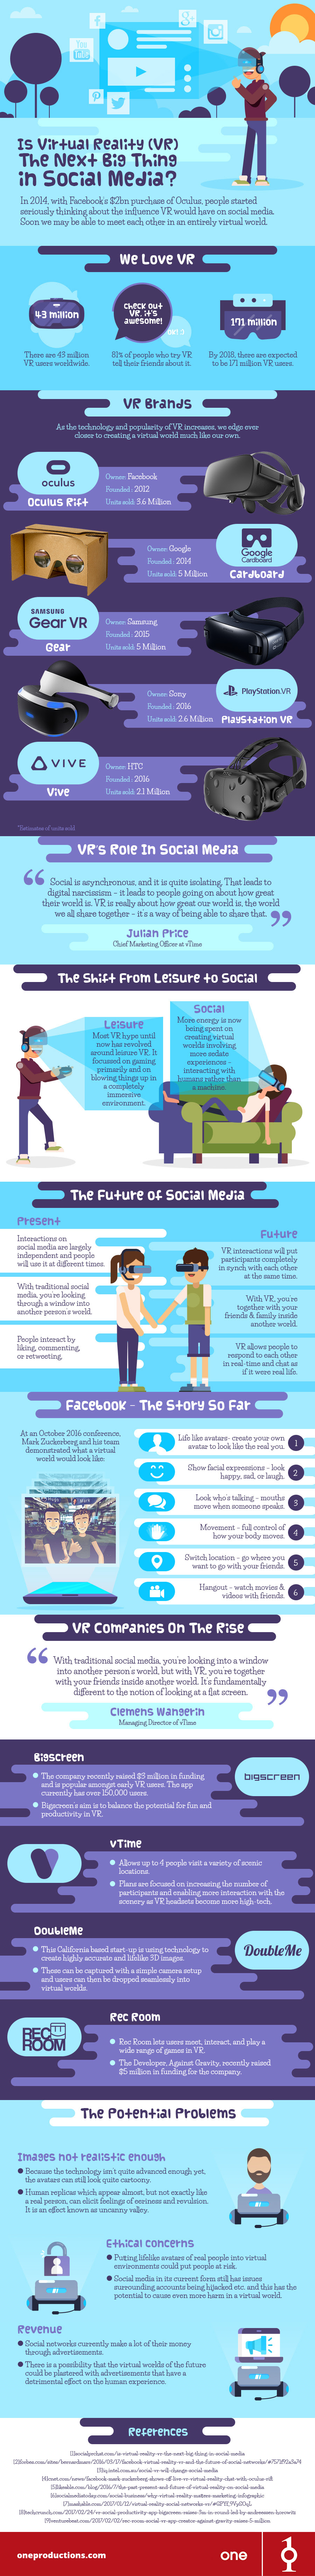 Virtual Reality - The Future of Social Media and Social Networking - Infographic